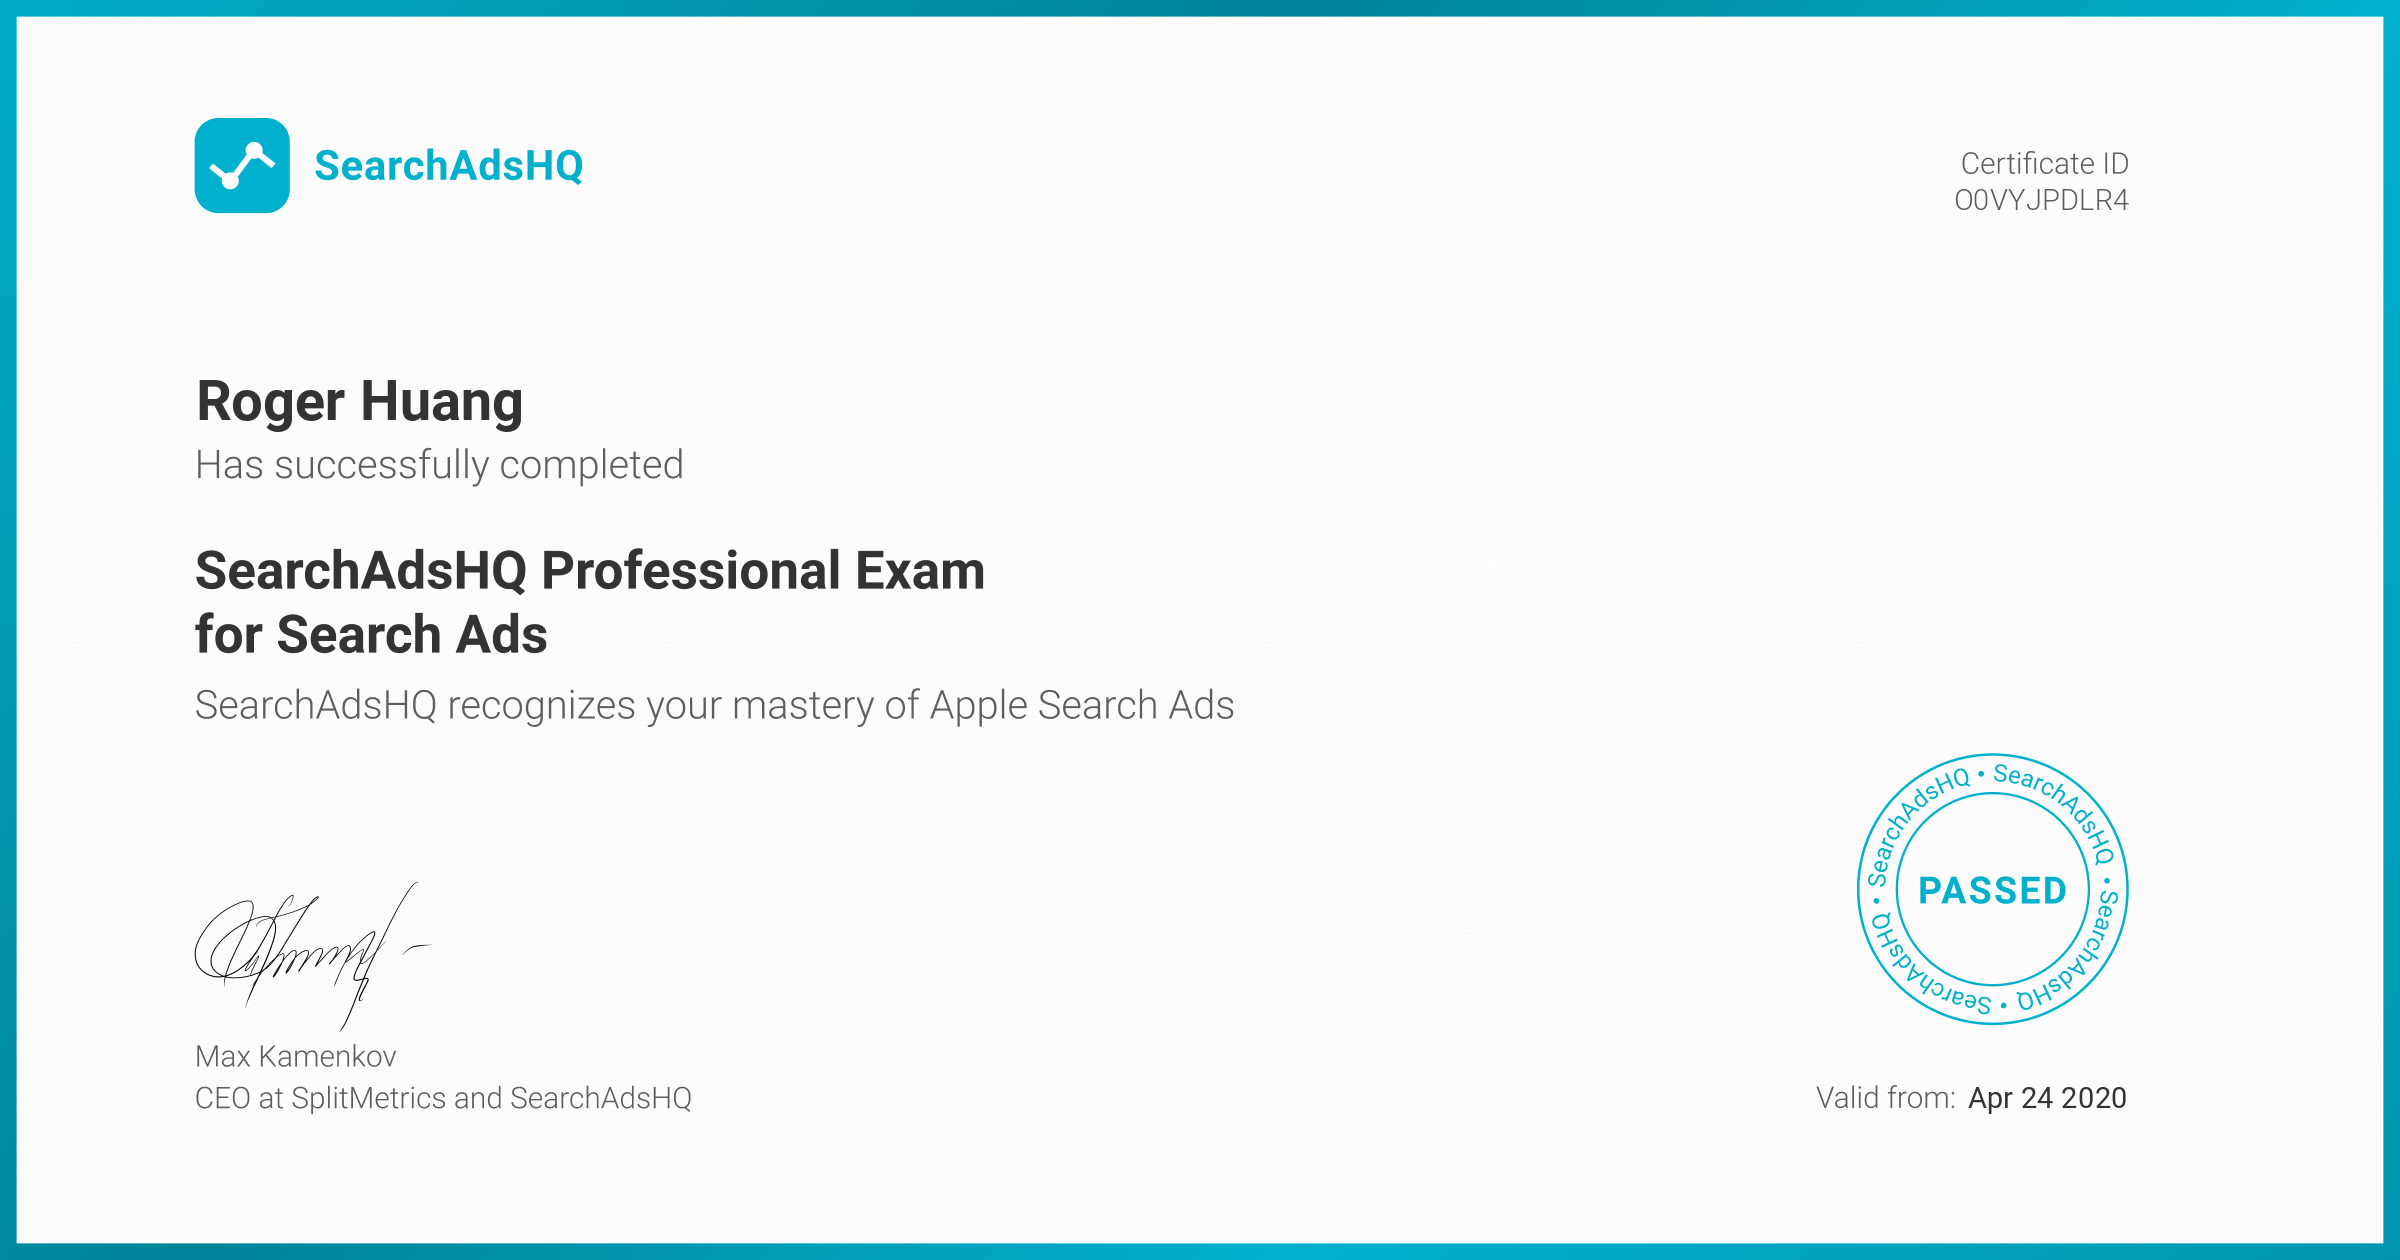 Certificate for Roger Huang | SearchAdsHQ Professional Exam for Search Ads